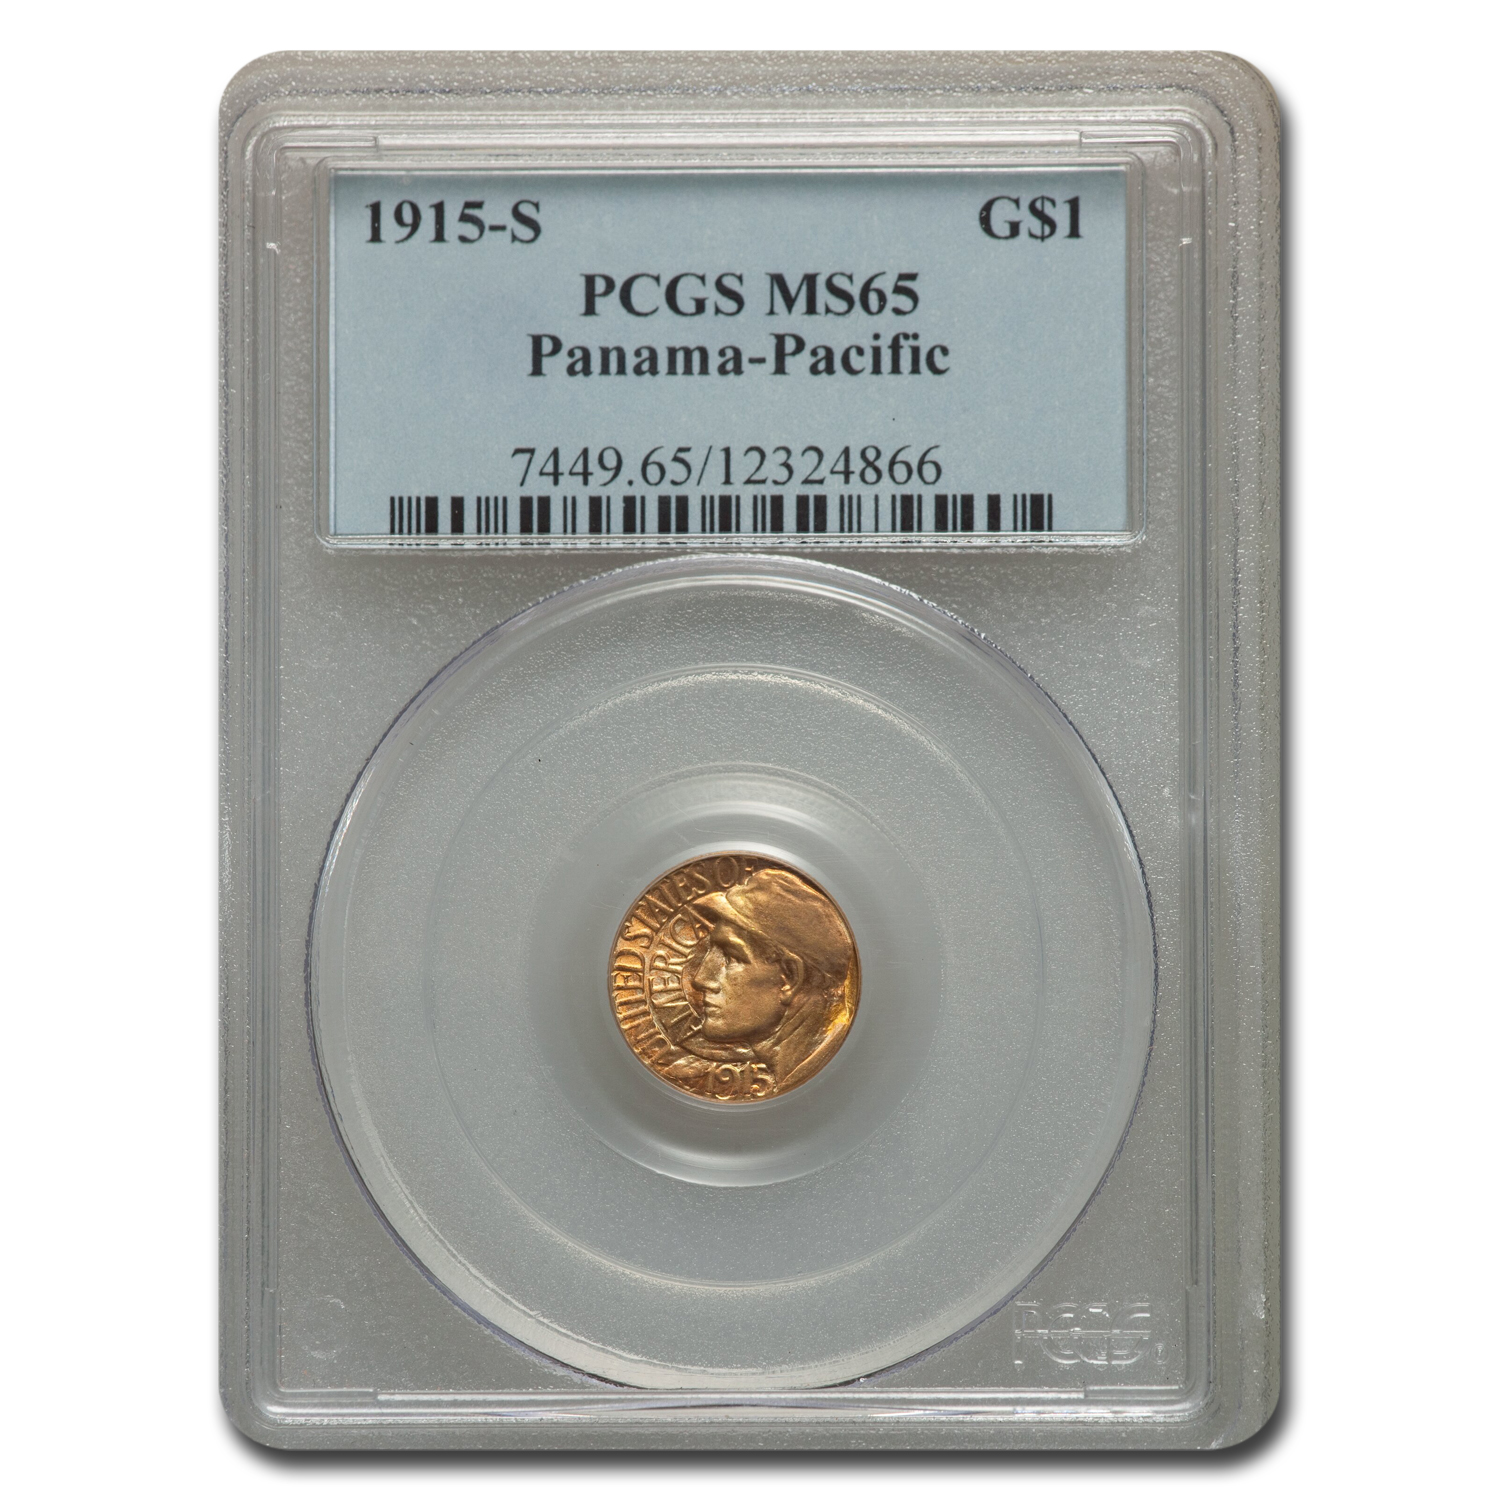 1915-S Gold $1.00 Panama-Pacific MS-65 PCGS